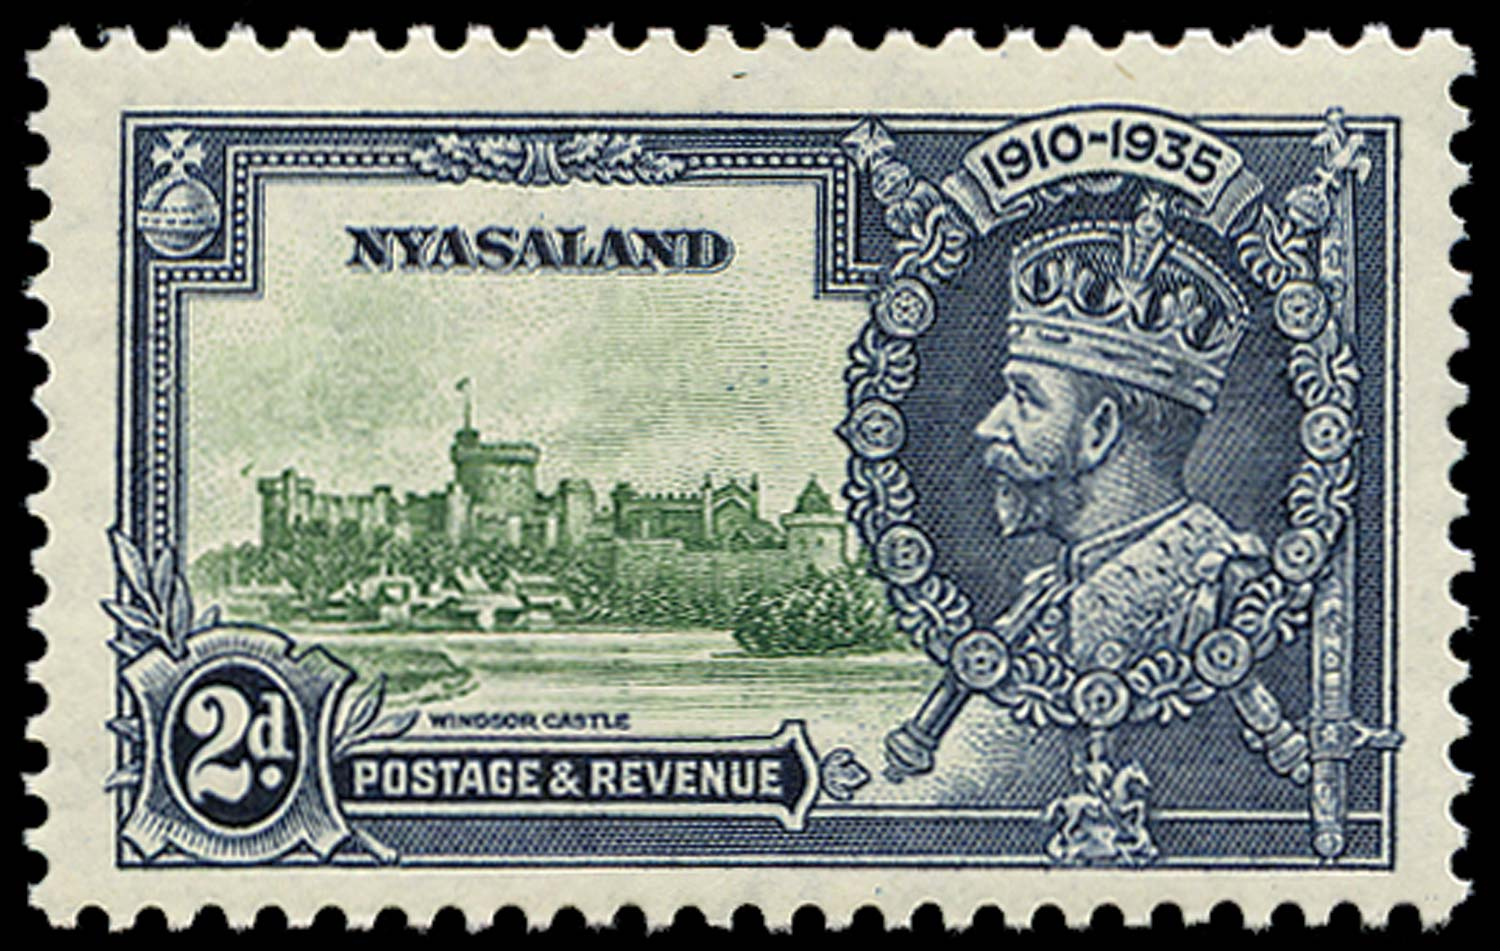 NYASALAND 1935  SG124m Mint Silver Jubilee 2d Bird by Turret